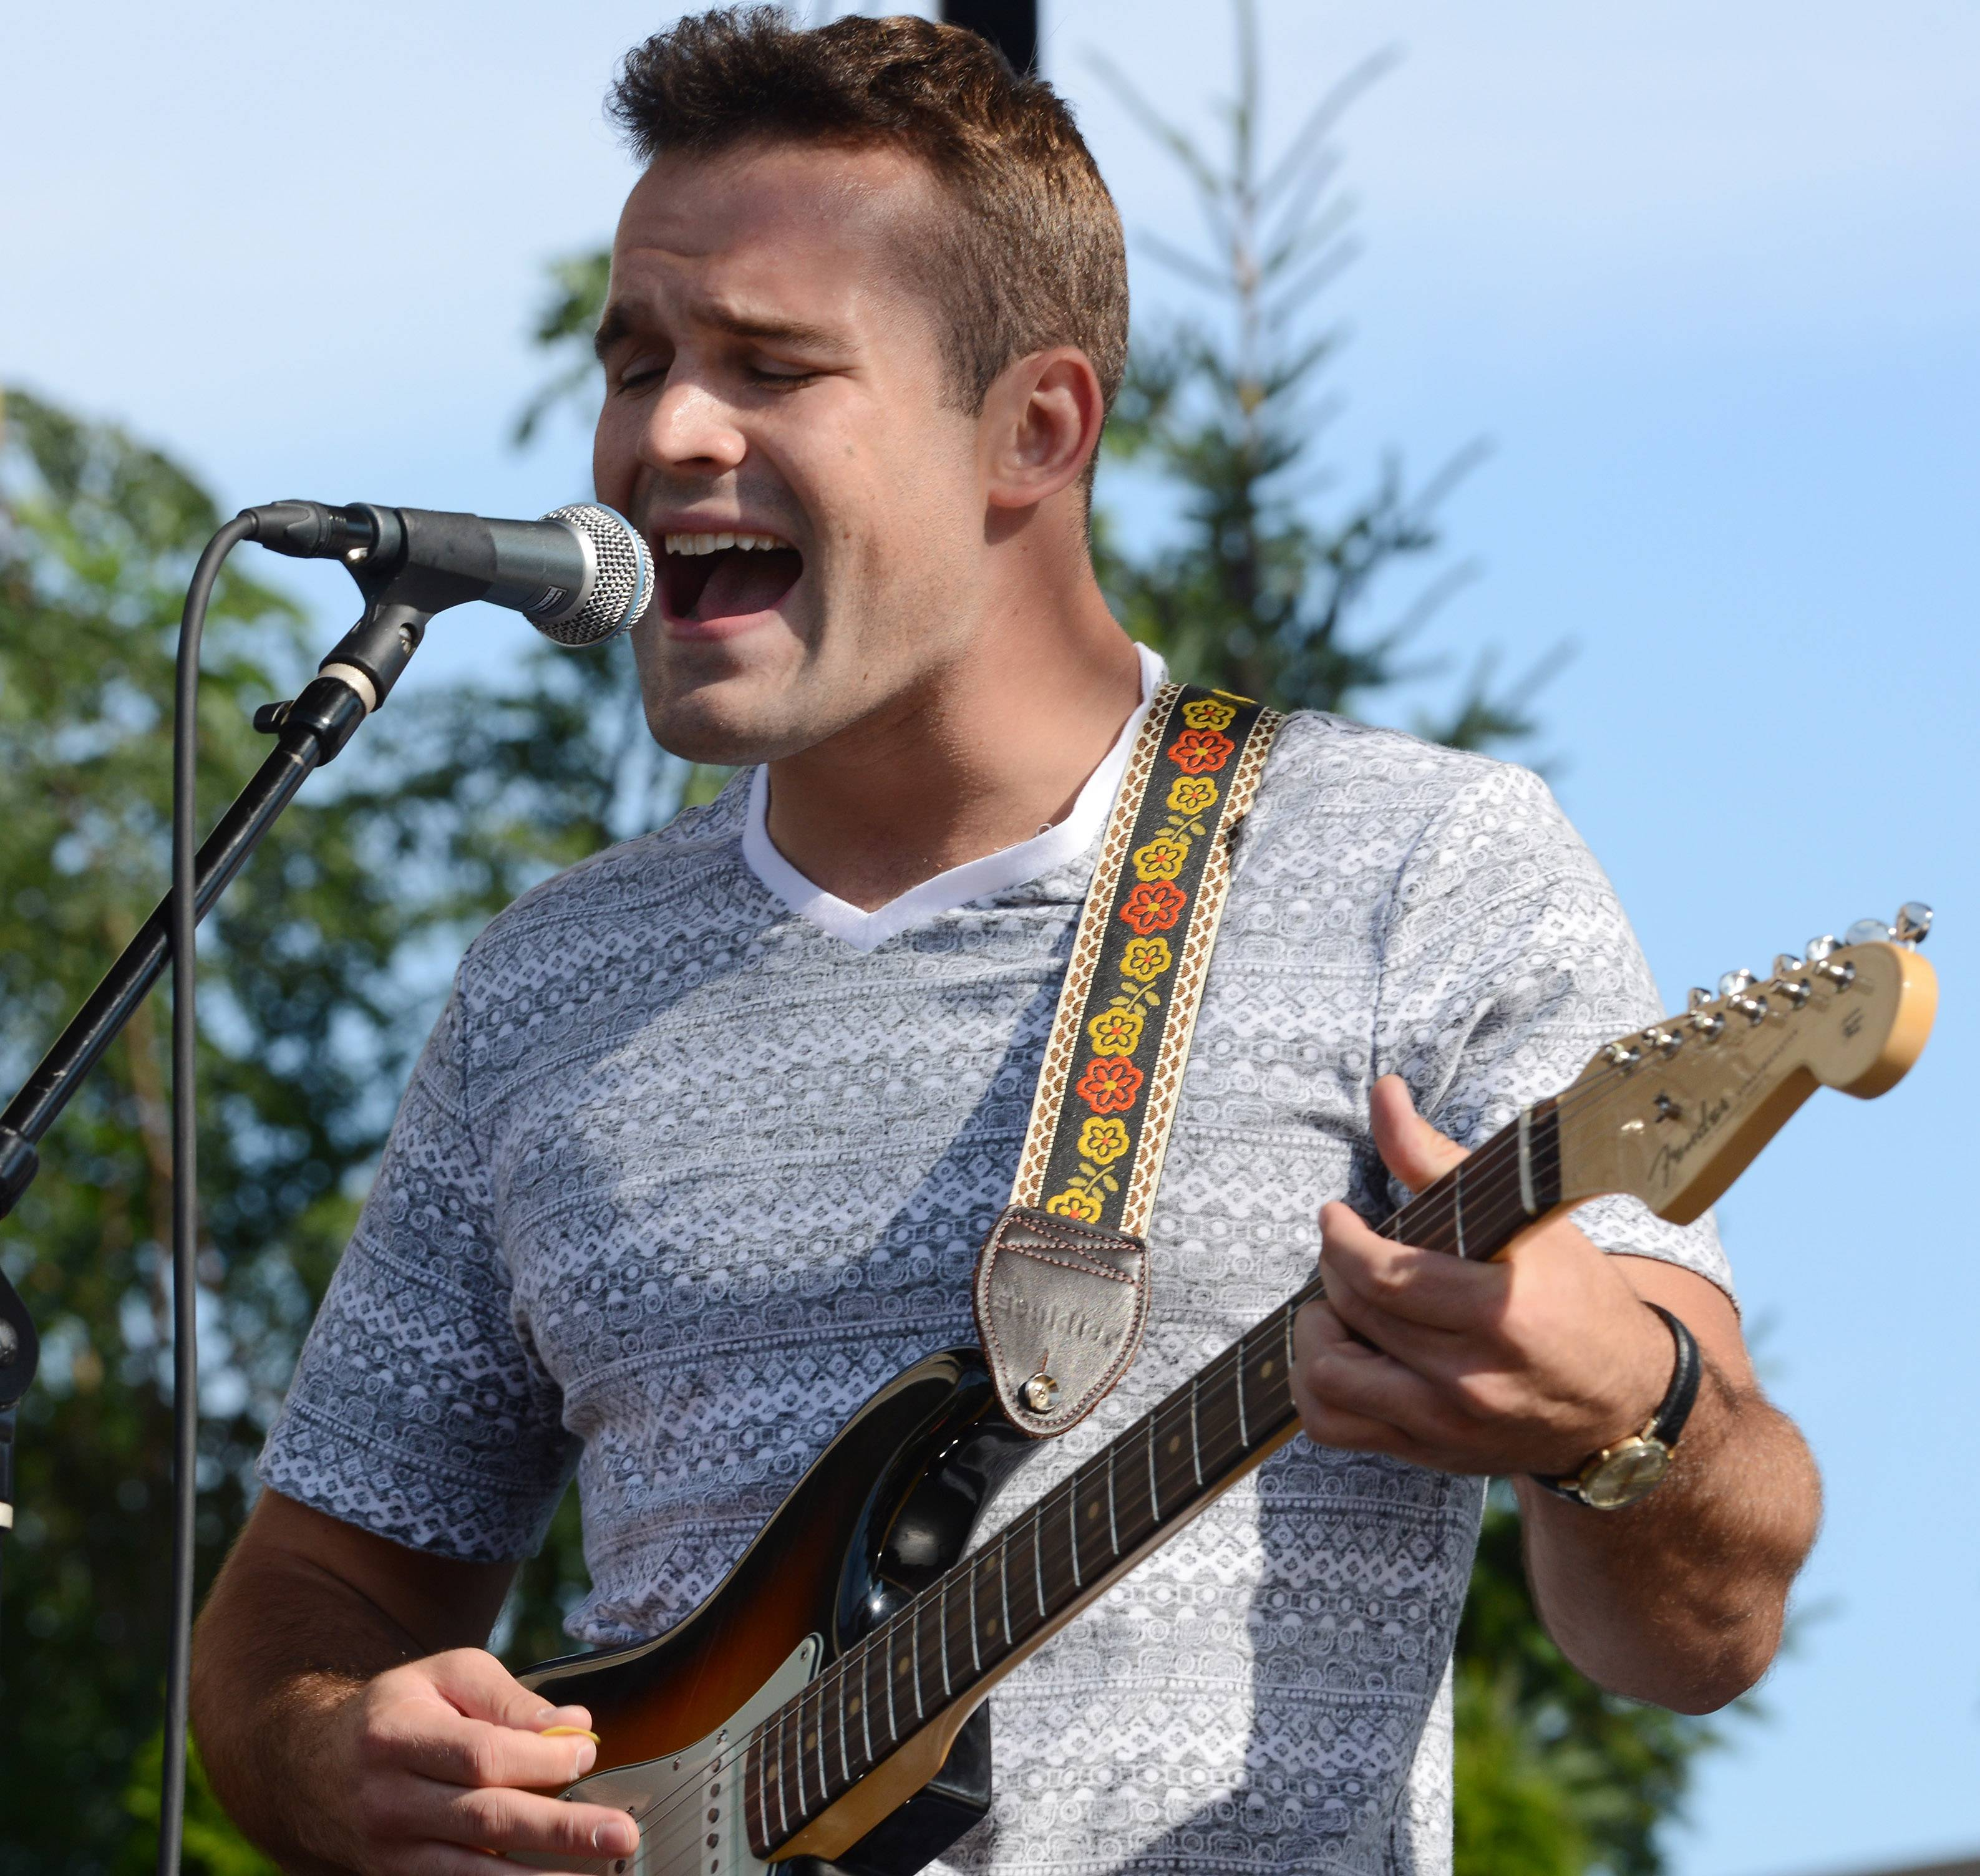 Dennis Caravello of Mount Prospect won 2014's Suburban Chicago's Got Talent competition during a final round of performances Saturday at Taste of Arlington Heights.